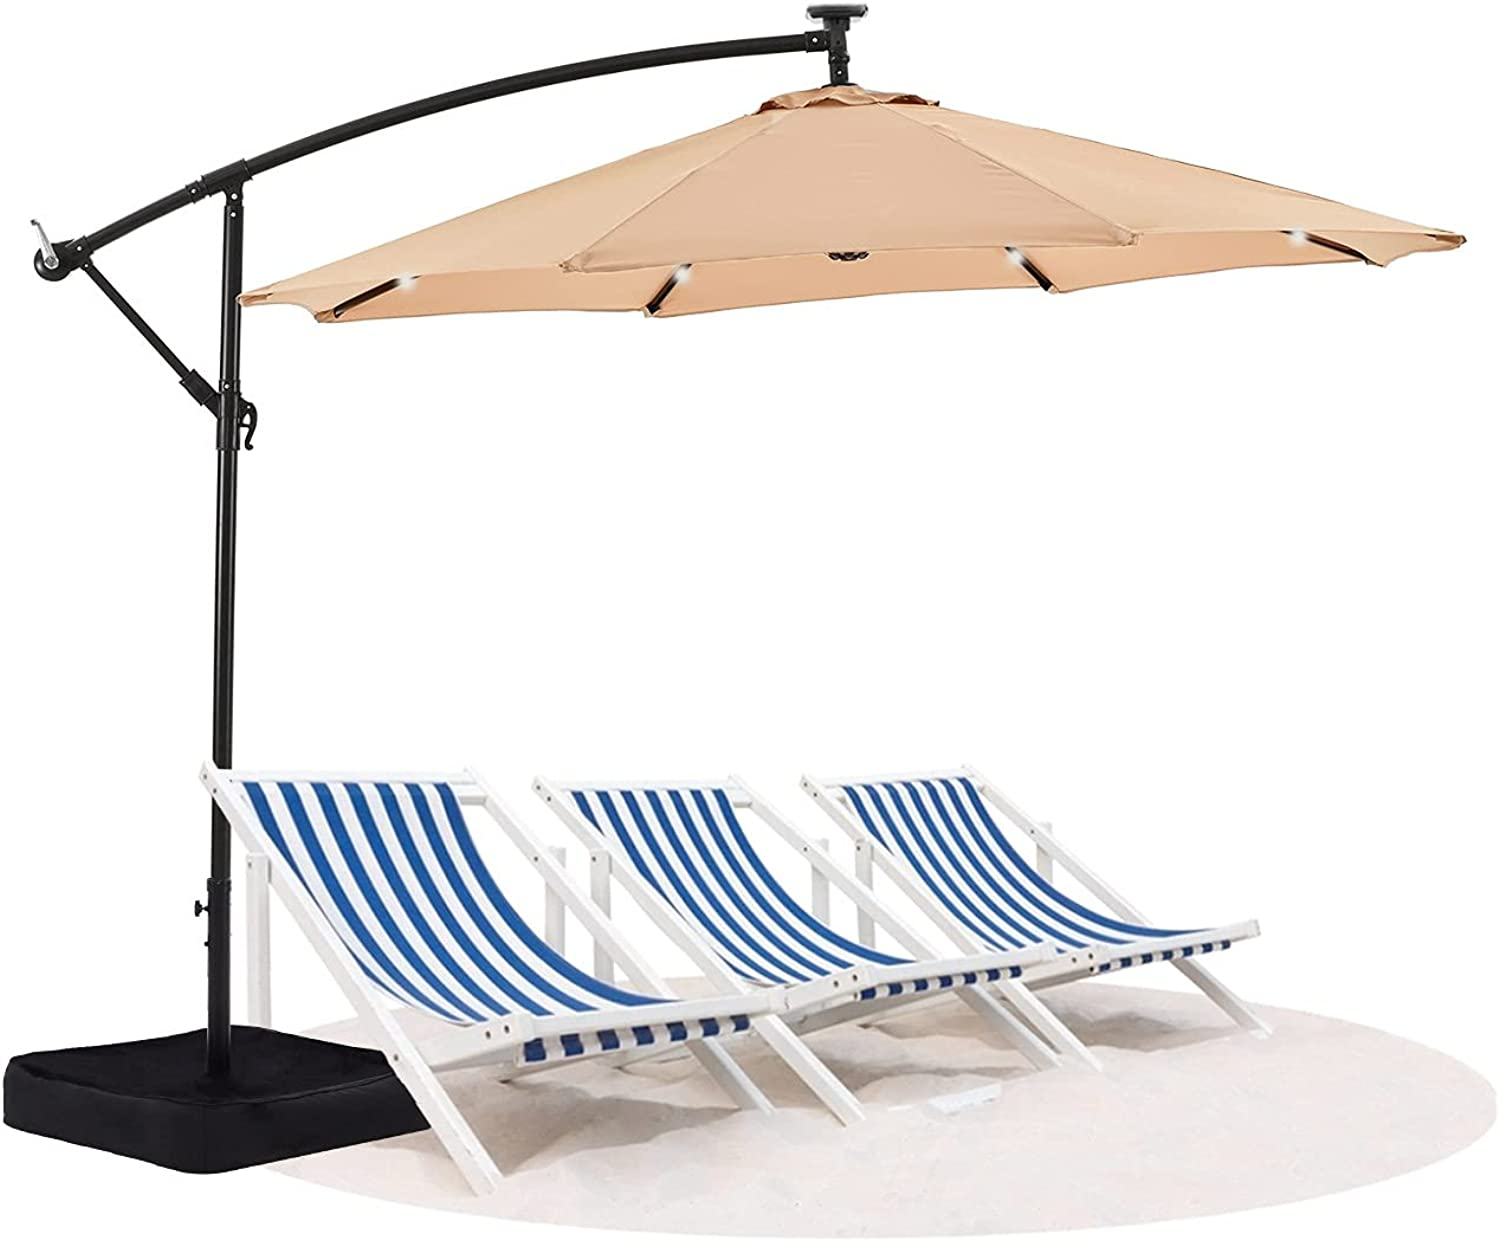 Vicllax 10FT Offset Patio Umbrella with Solar Lights, Cross Base and Weight Bags for Backyard, Lawn and Garden